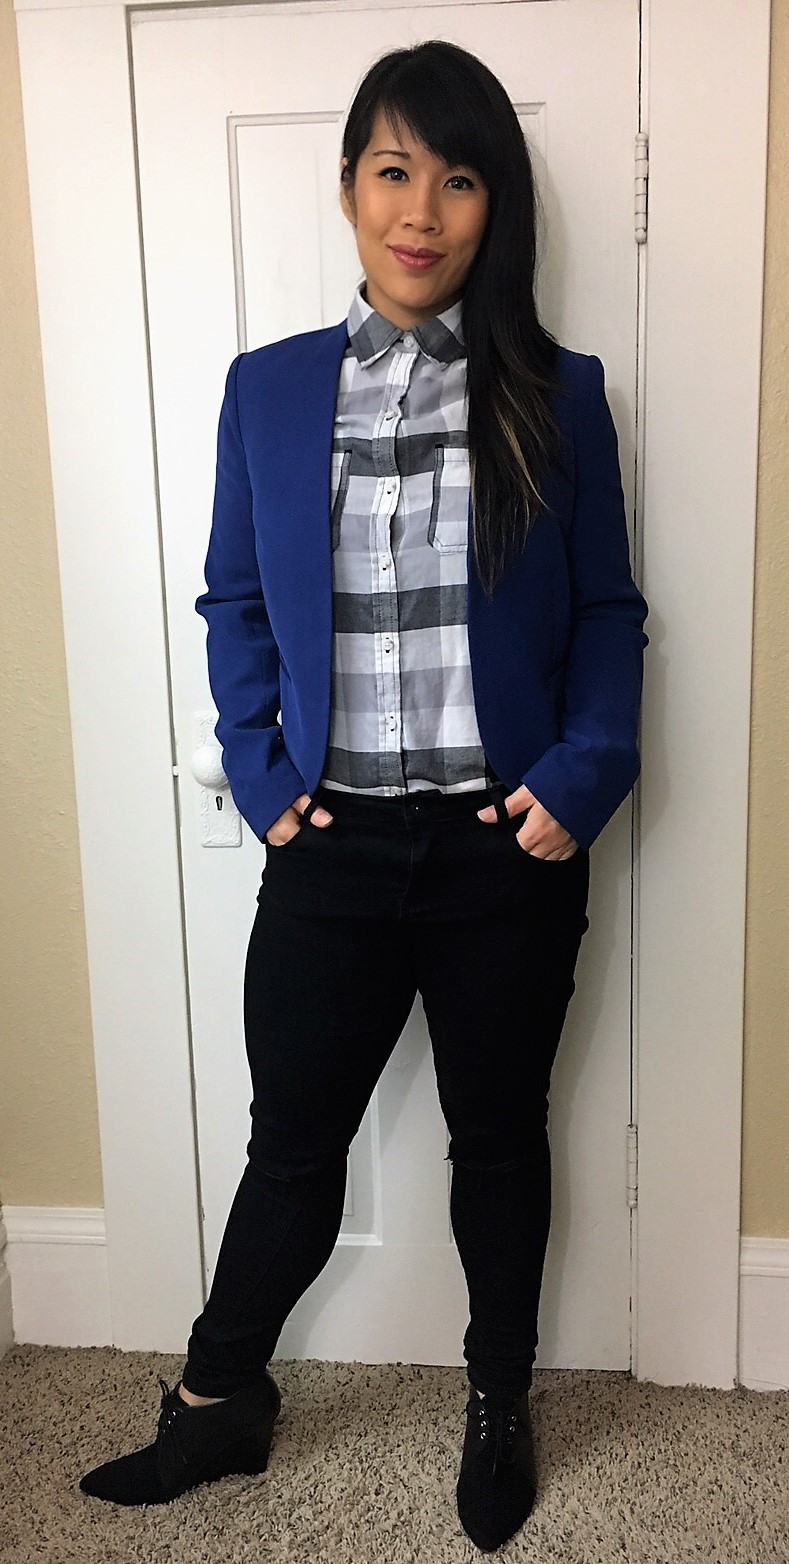 Kat wearing flannel shirt with blue blazer